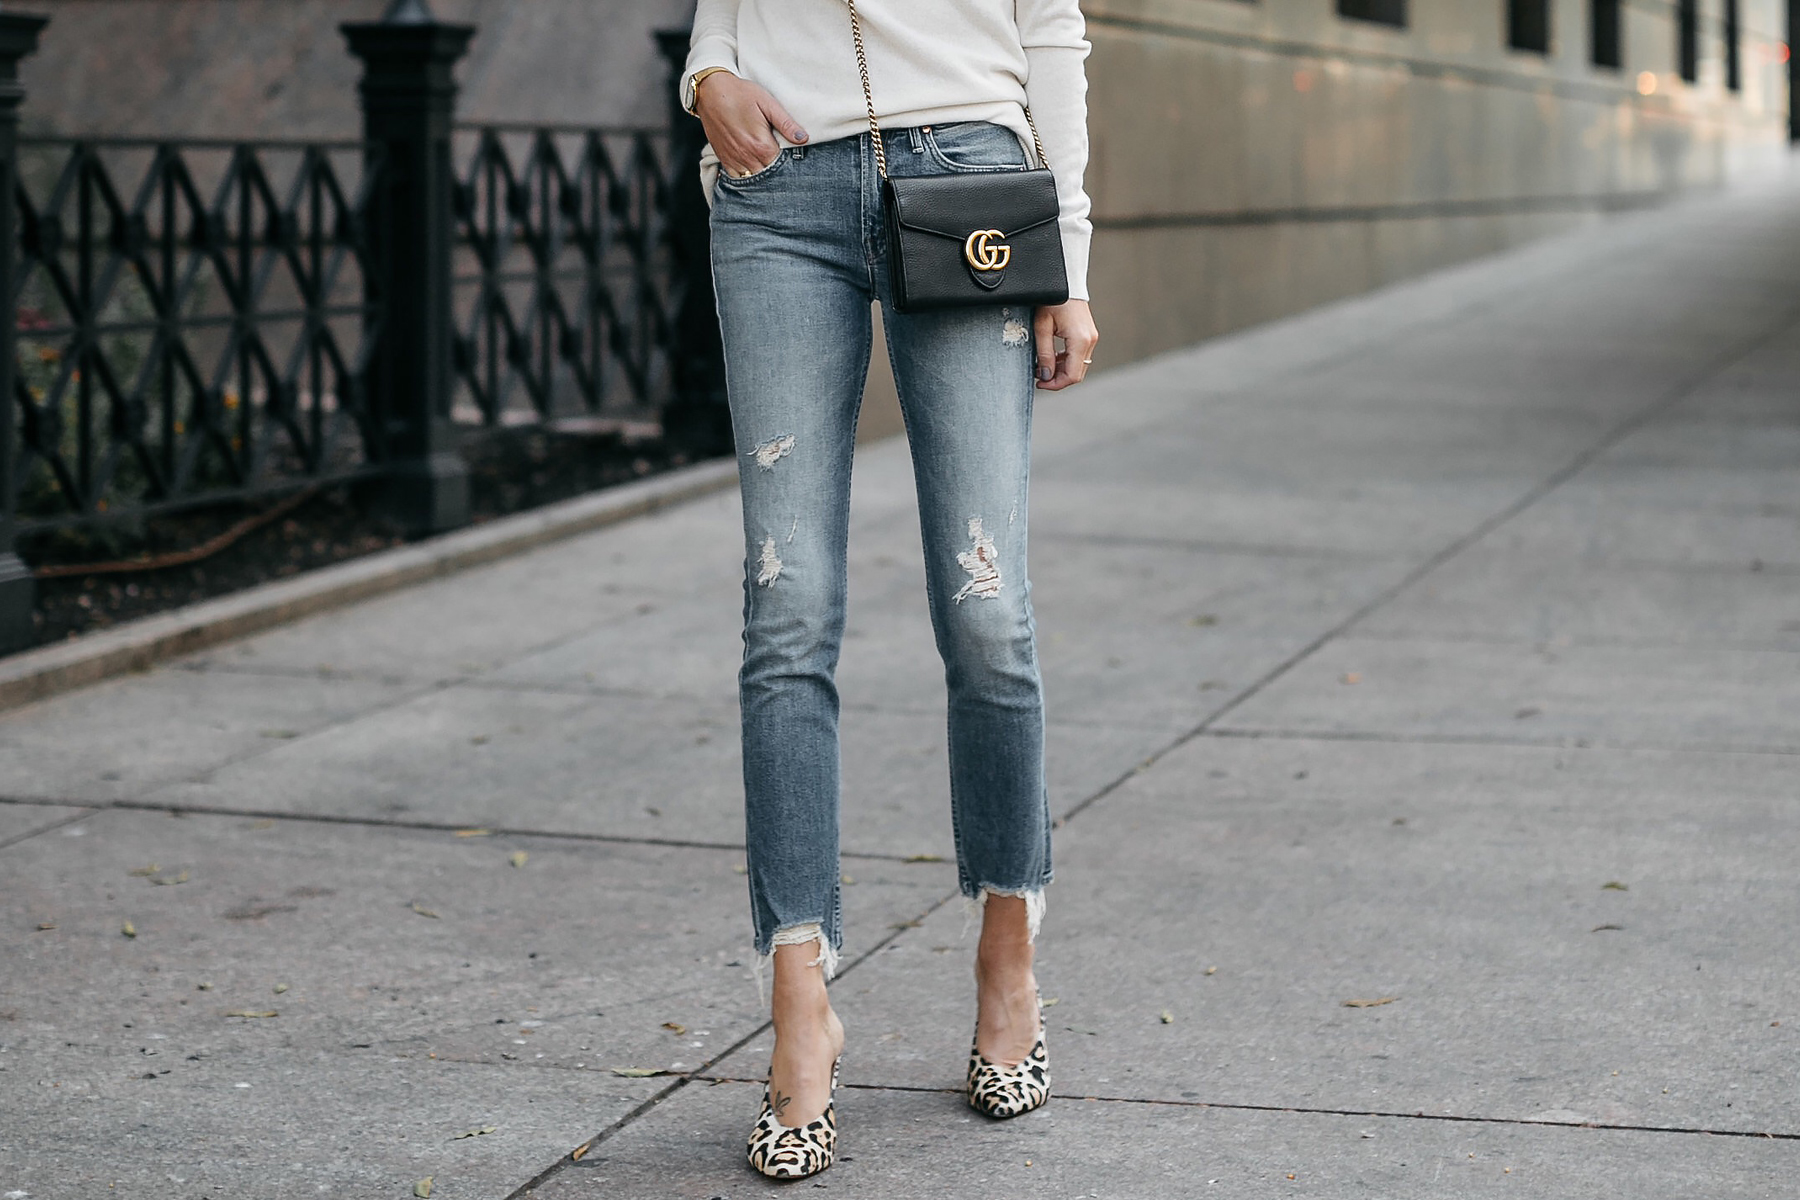 Mother Ripped Denim Jeans Gucci Marmont Handbag Leopard Heels Fashion Jackson Dallas Blogger Fashion Blogger Street Style